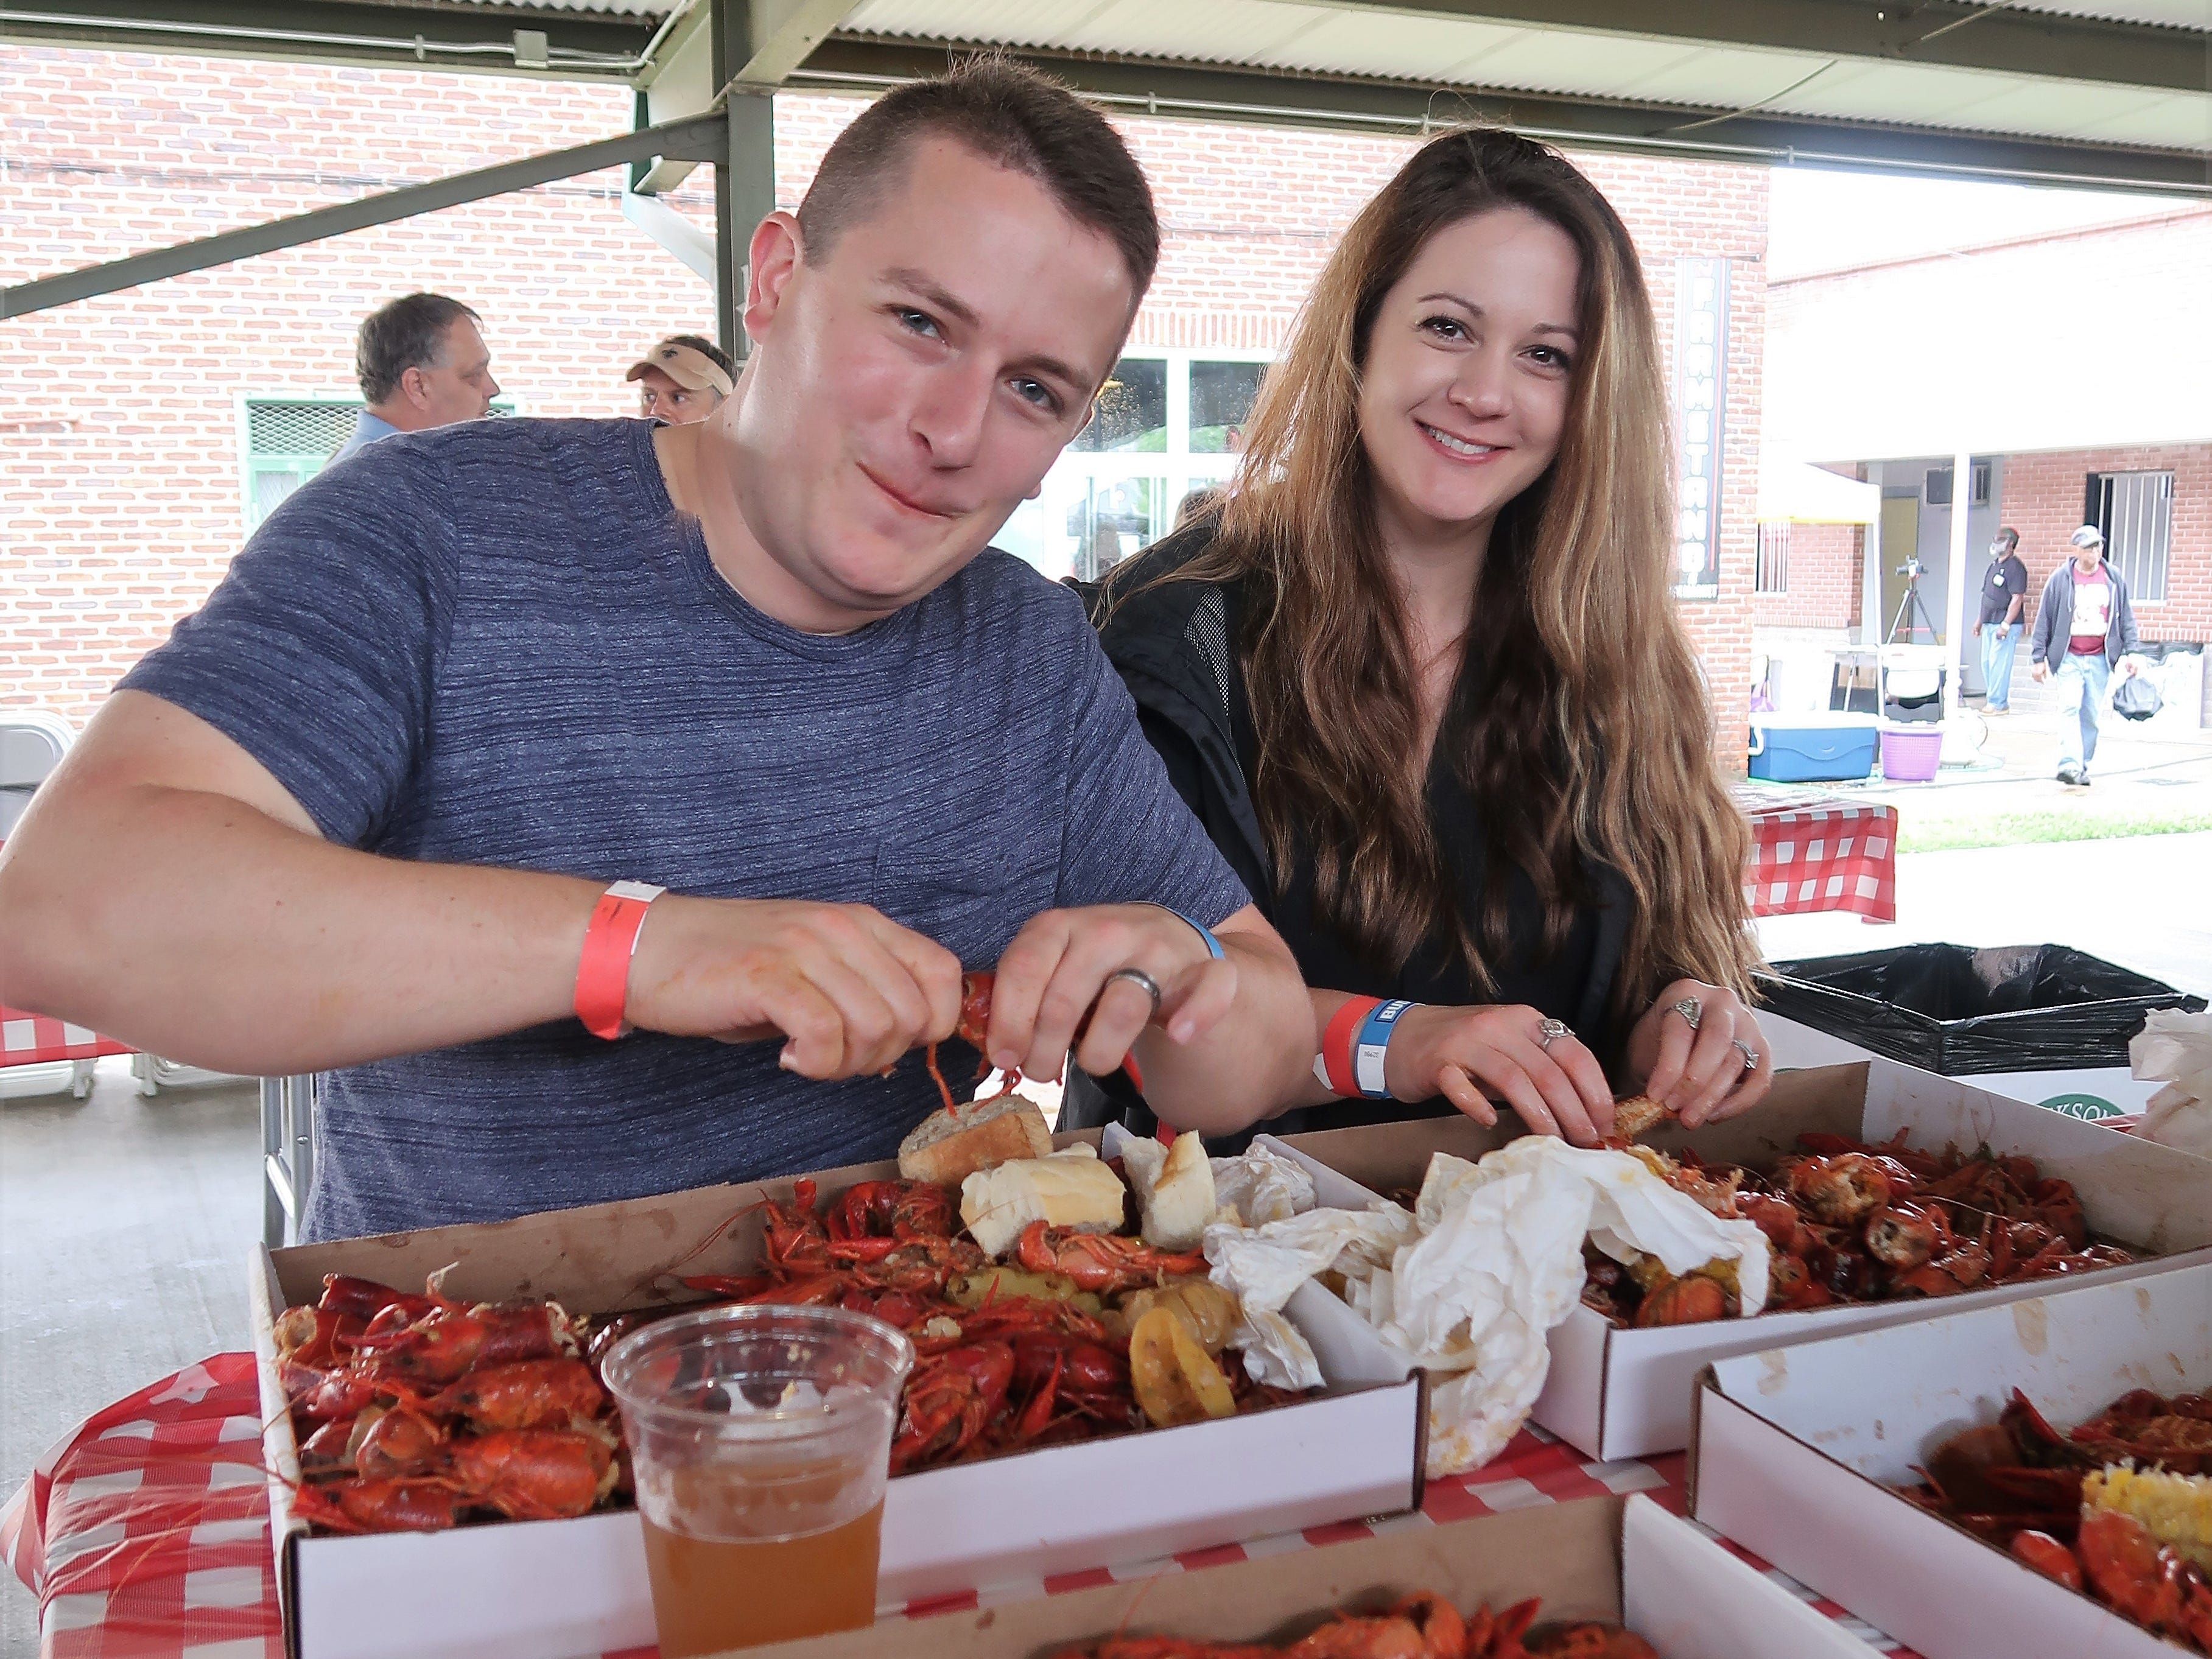 Andren Meehan and Jessica Meehan dig into their baskets of crawfish at the Second Annual Crawfest fundraiser for the Scarlet Rope Project at the West Tennessee Farmer's Market in Jackson on May 4, 2019.